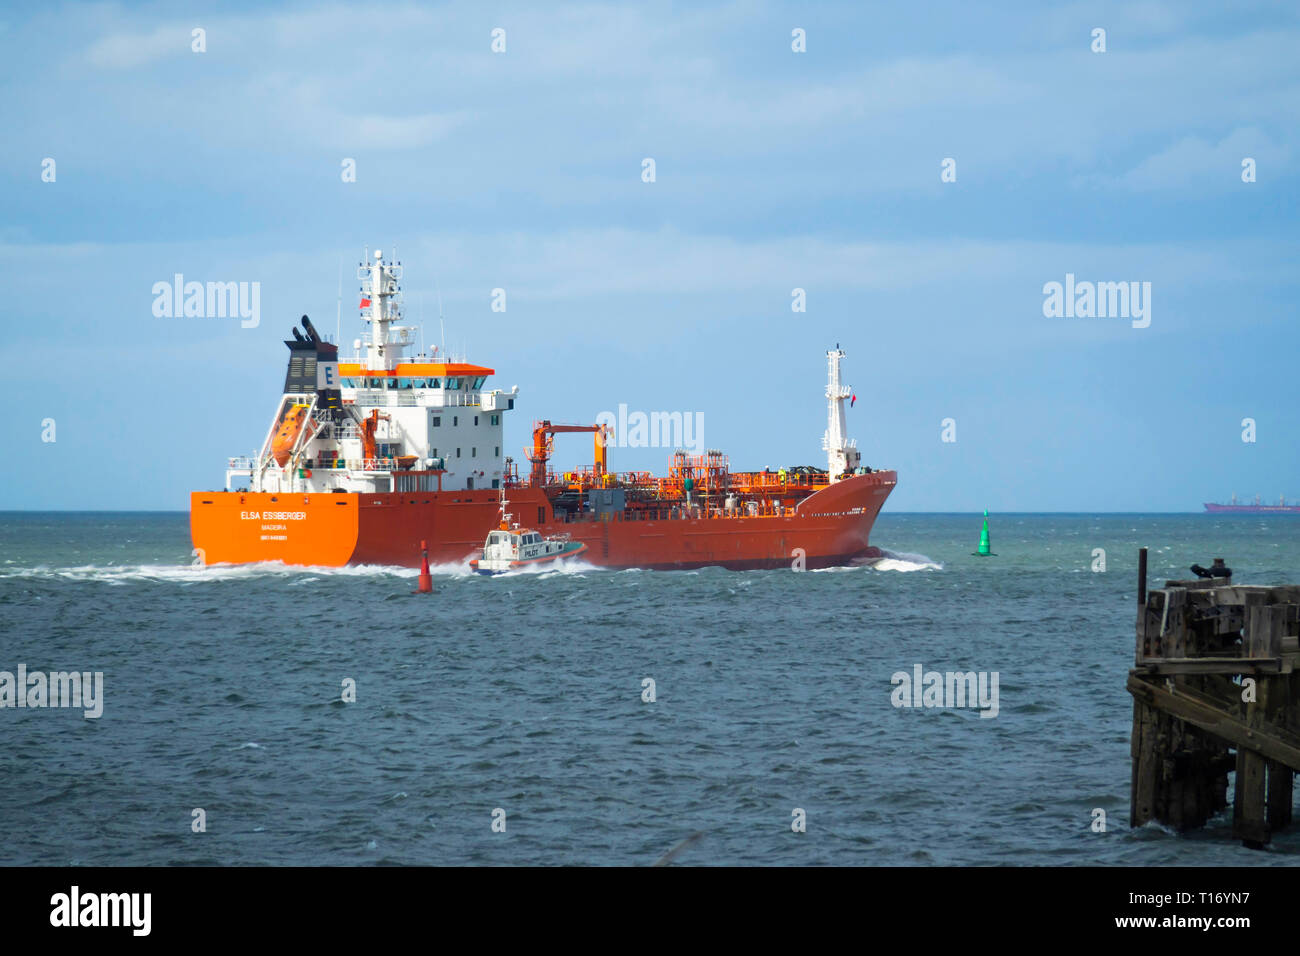 Oil Chemical tanker ELSA ESSBERGER  IMO:9481001, MMSI 255805470 departing from Teesport England UK with a pilot boat alongside Stock Photo